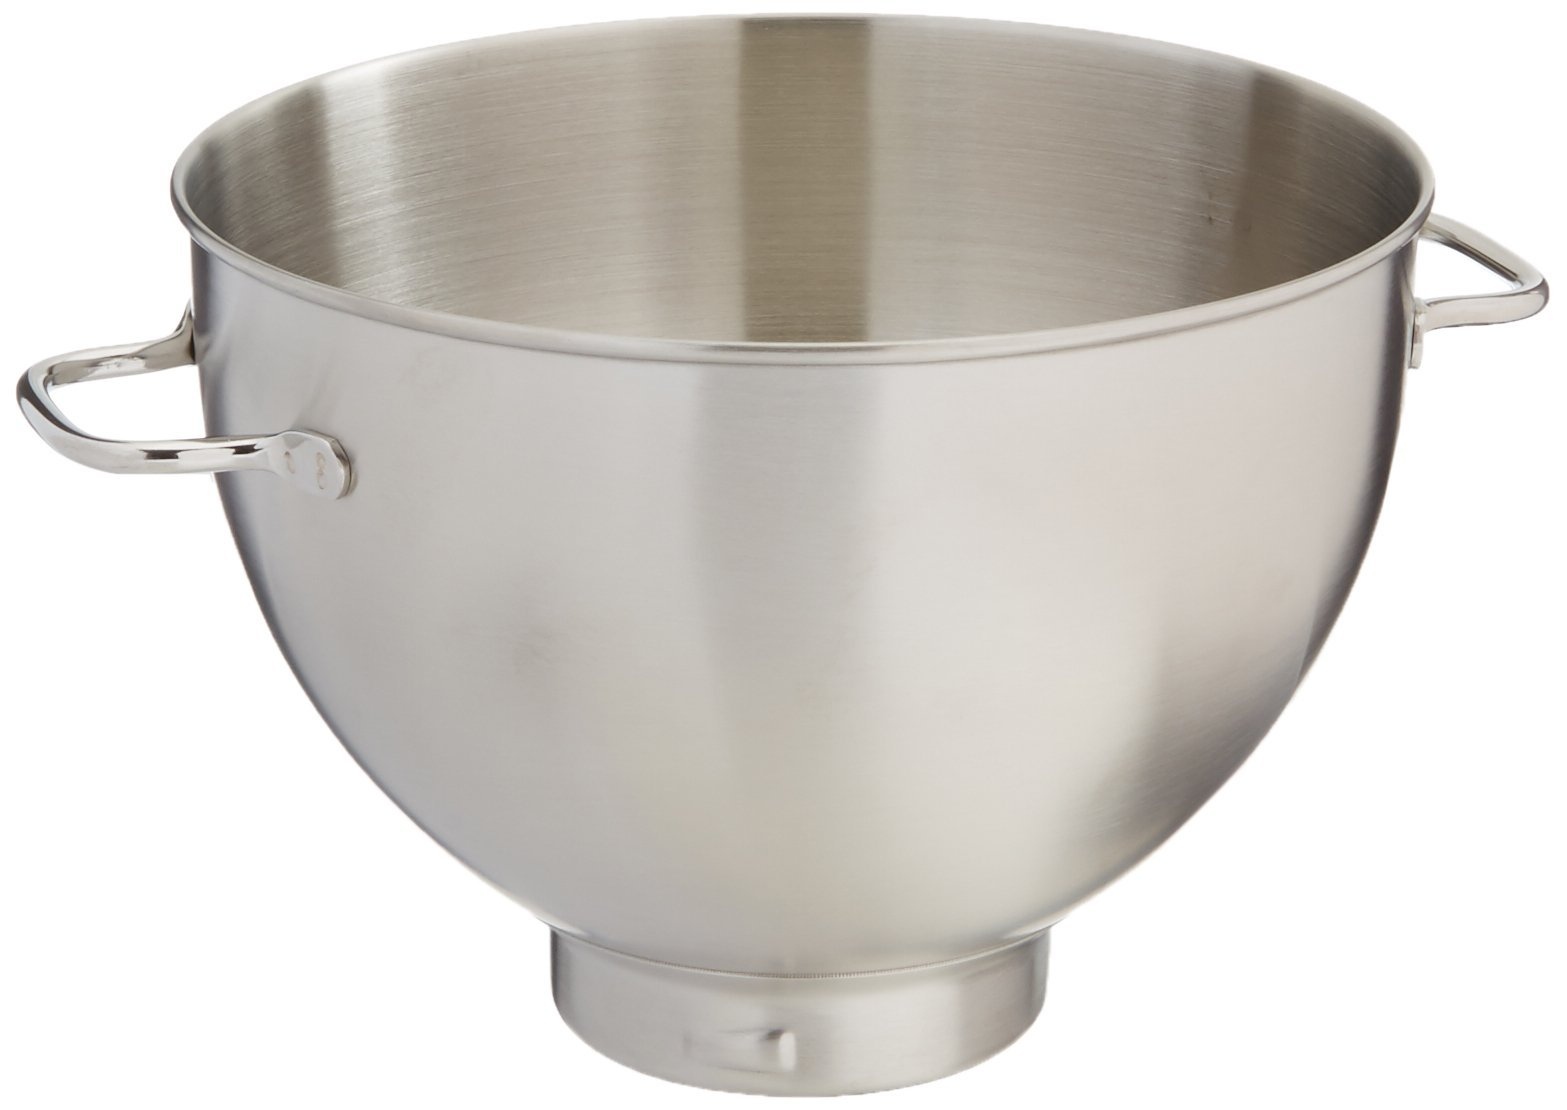 Breville BBA500XL Second Bowl 4-Quart Stainless Steel Bowl for use with BEM800XL Stand Mixer